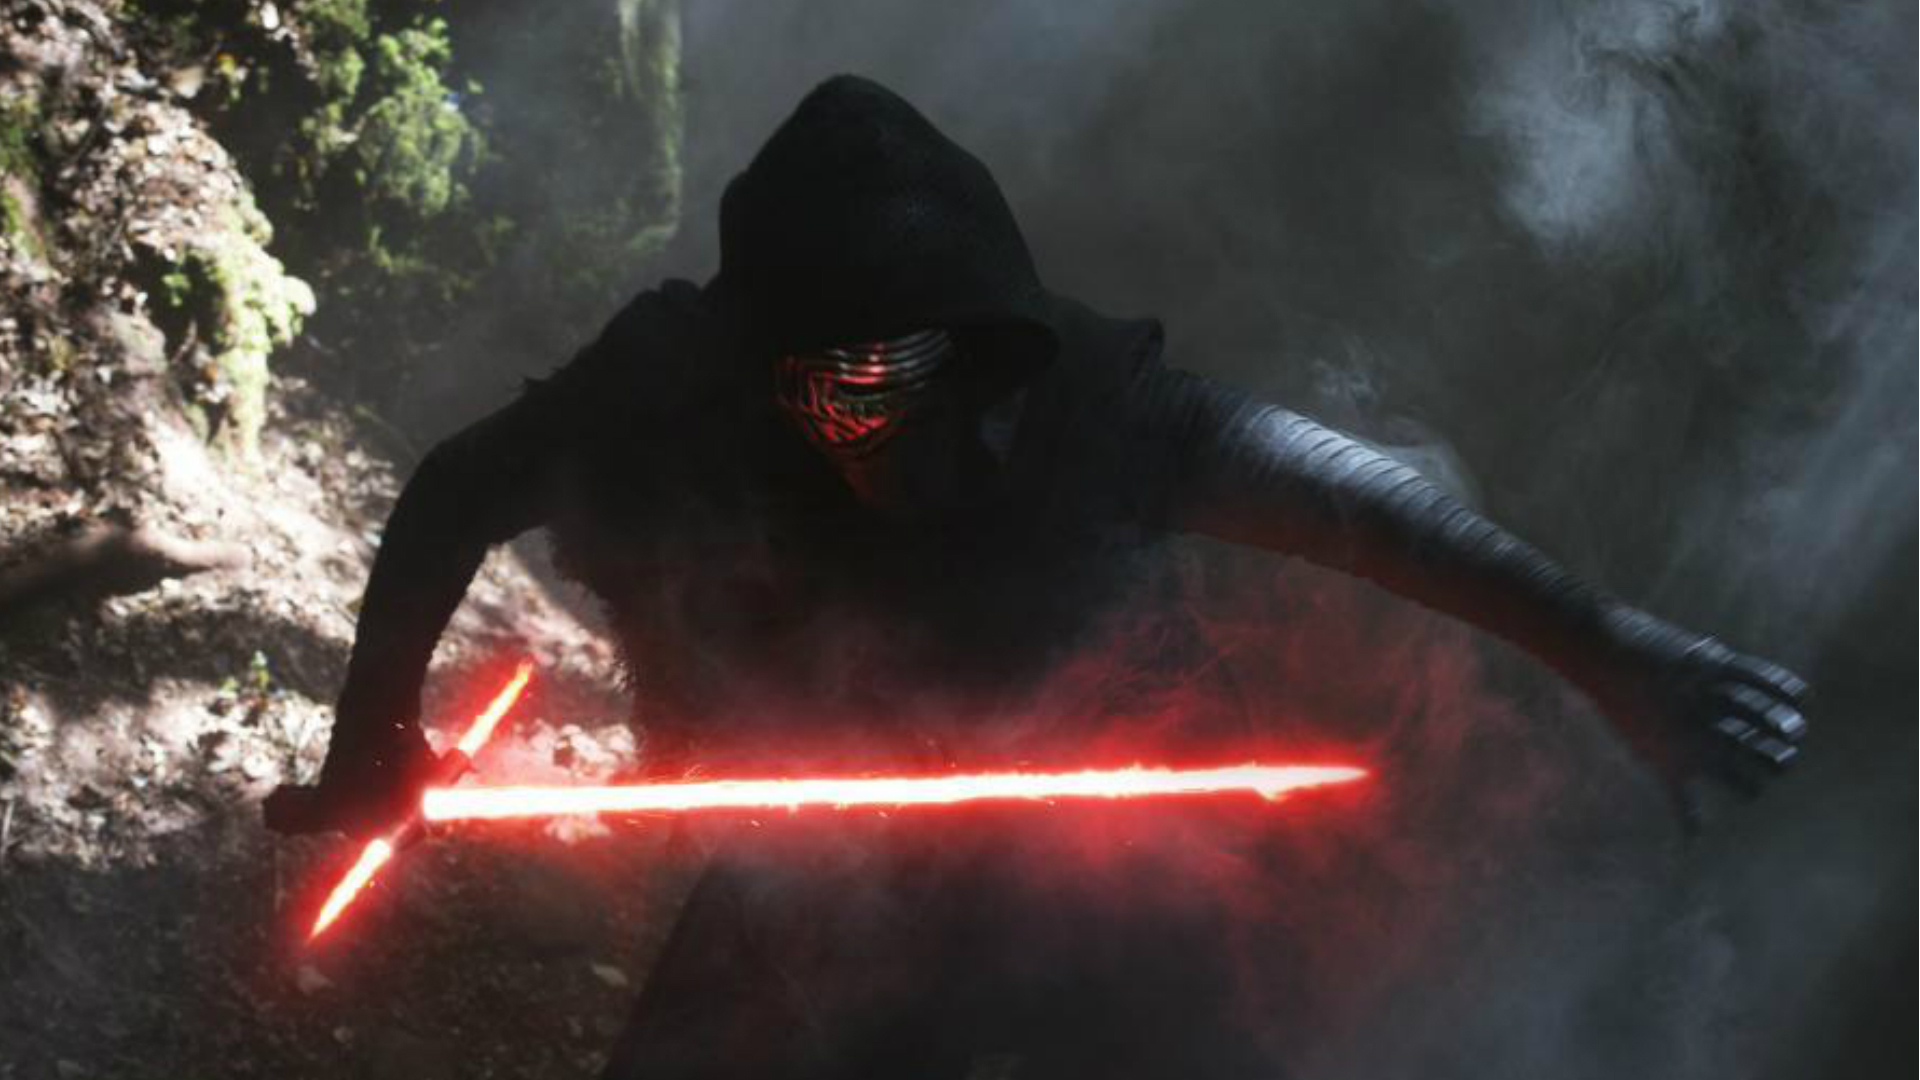 The role Eddie Redmayne could have had - Adam Driver as Kylo Ren